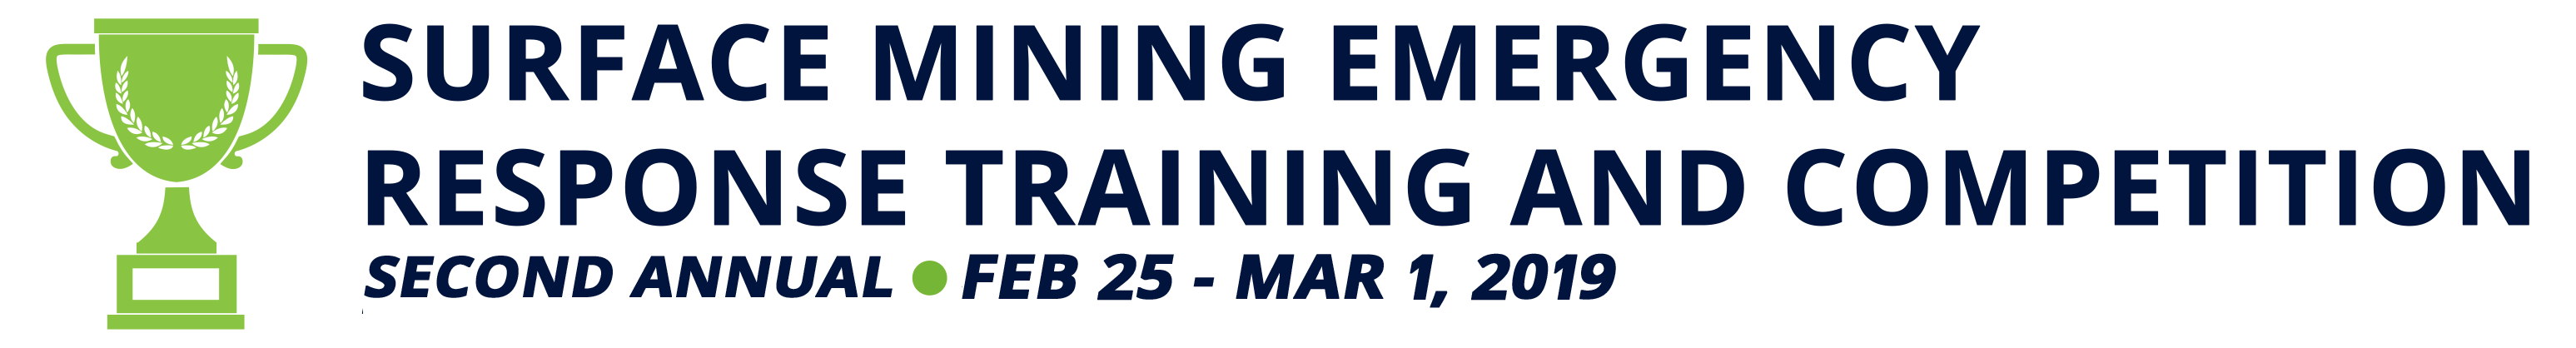 Surface Mining Emergency Response Training and Competition